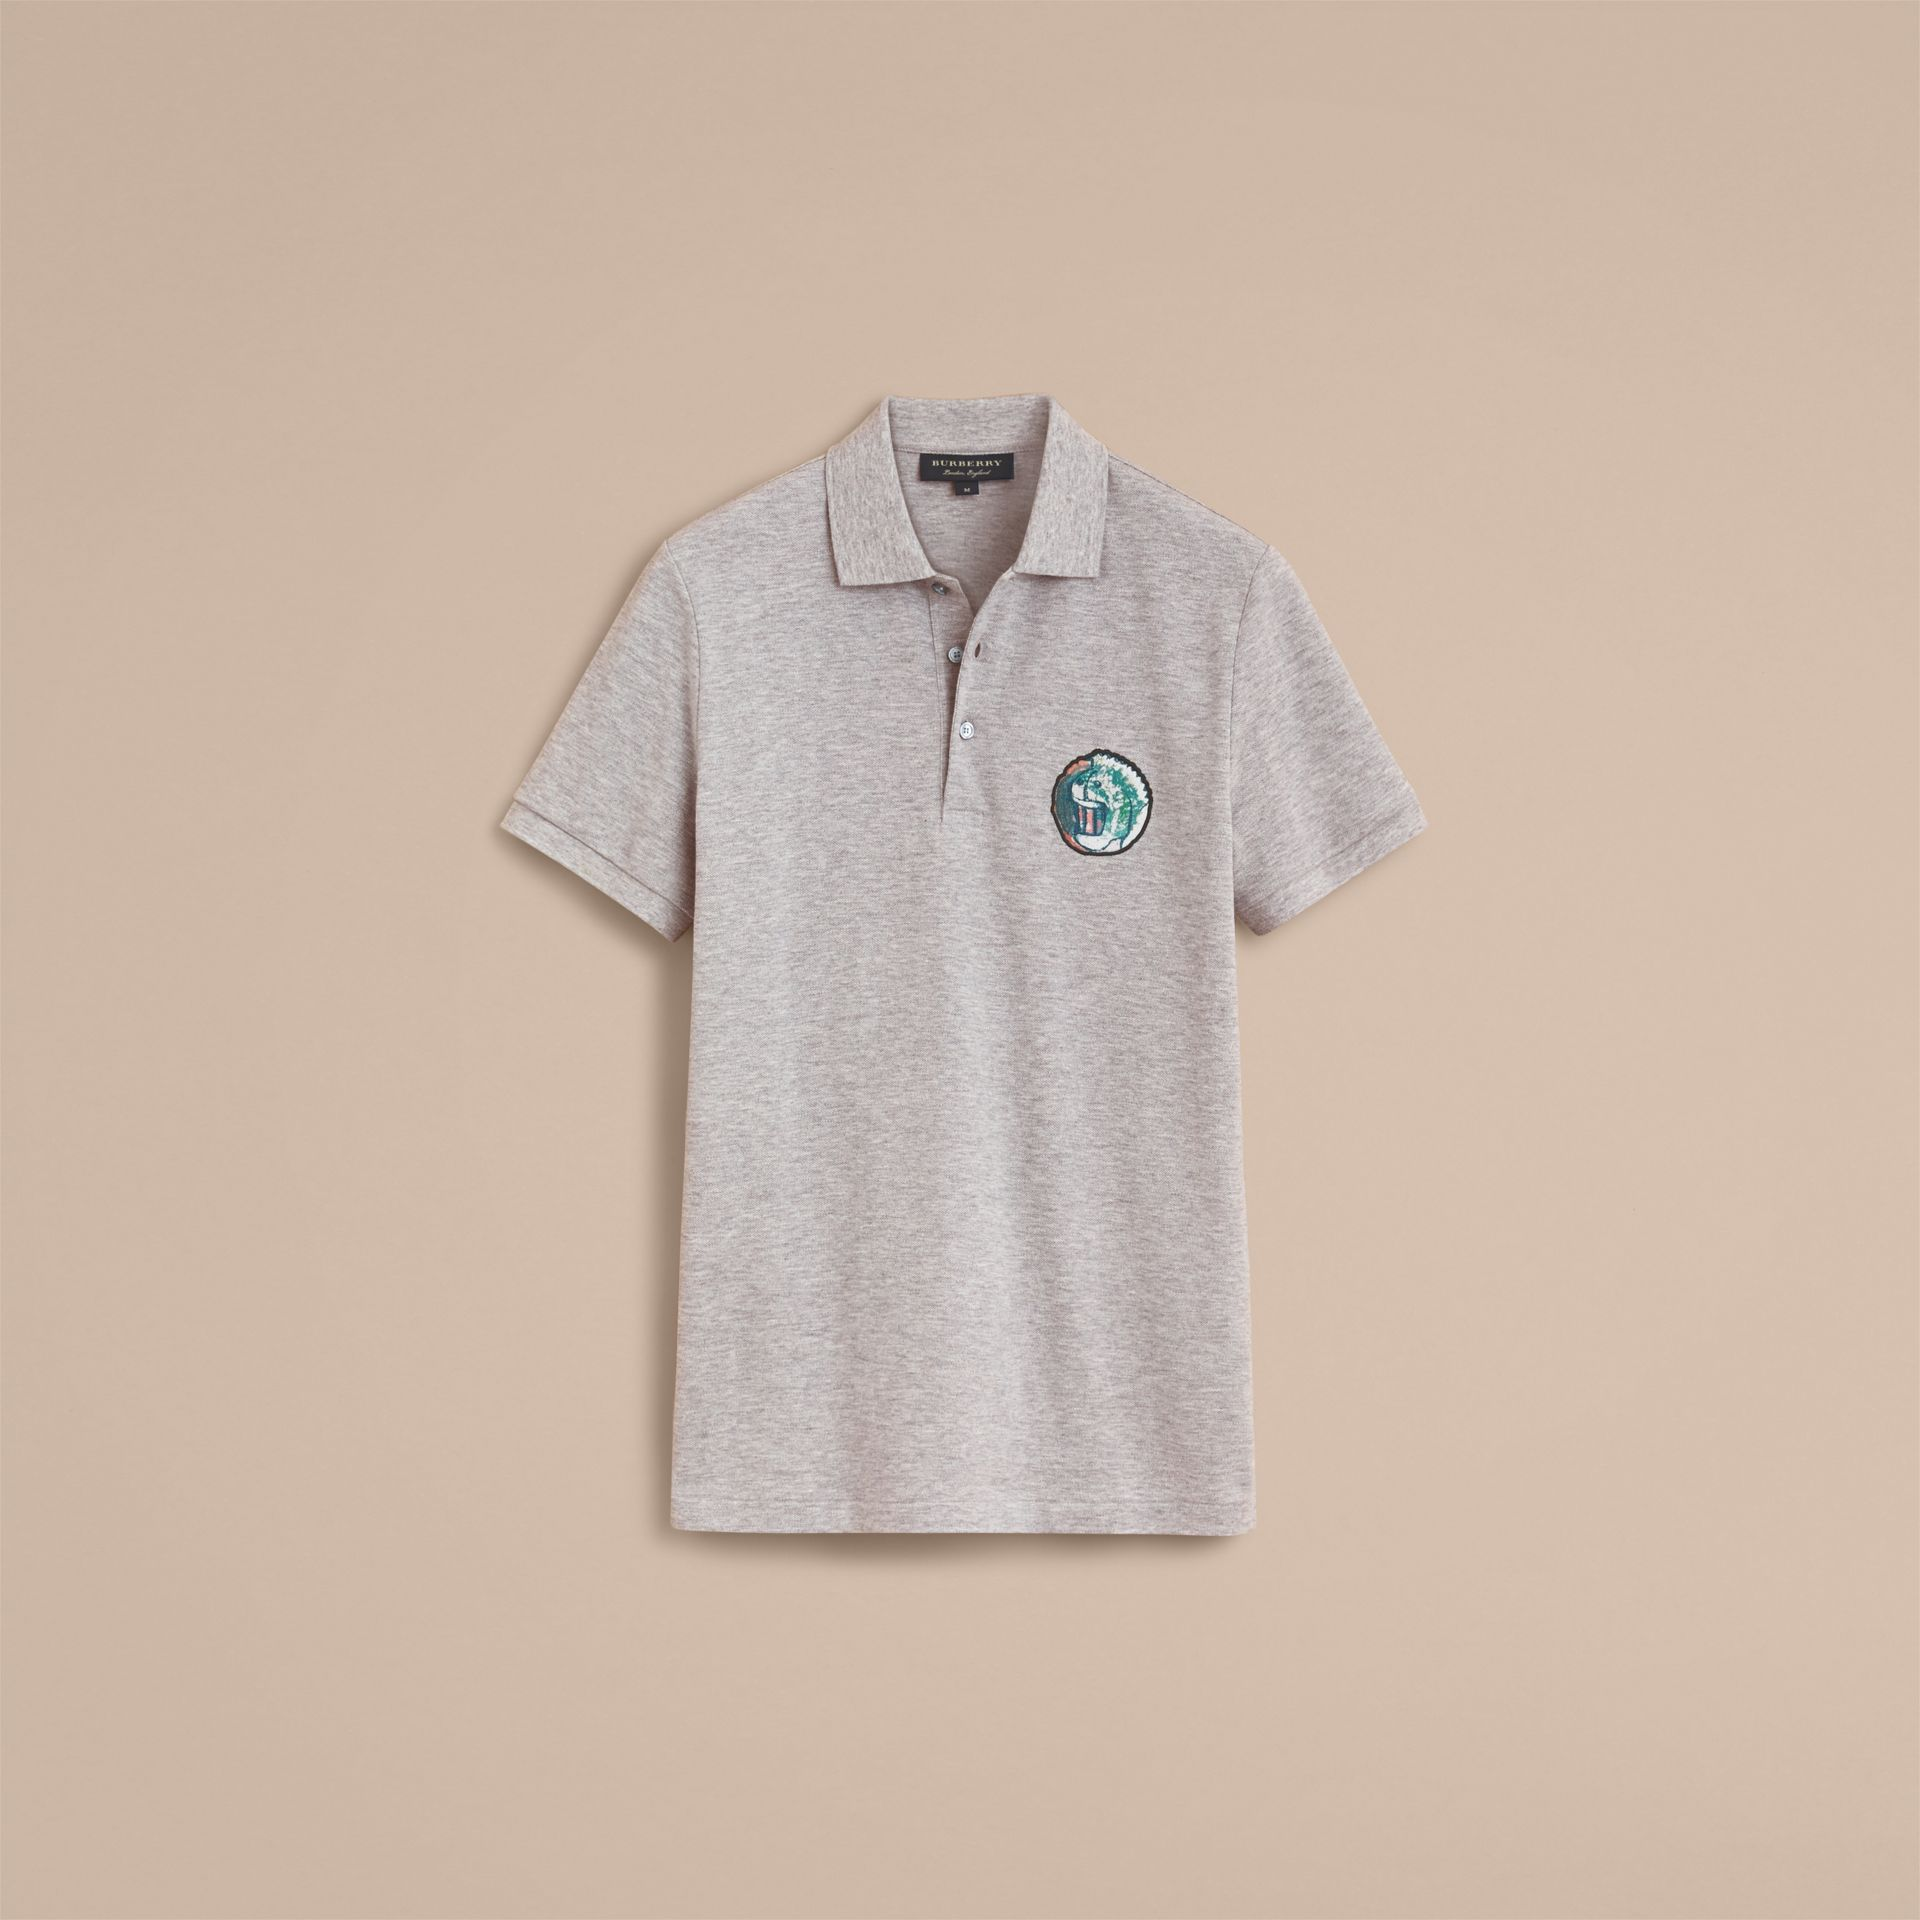 Pallas Heads Appliqué Cotton Polo Shirt in Pale Grey Melange - gallery image 4